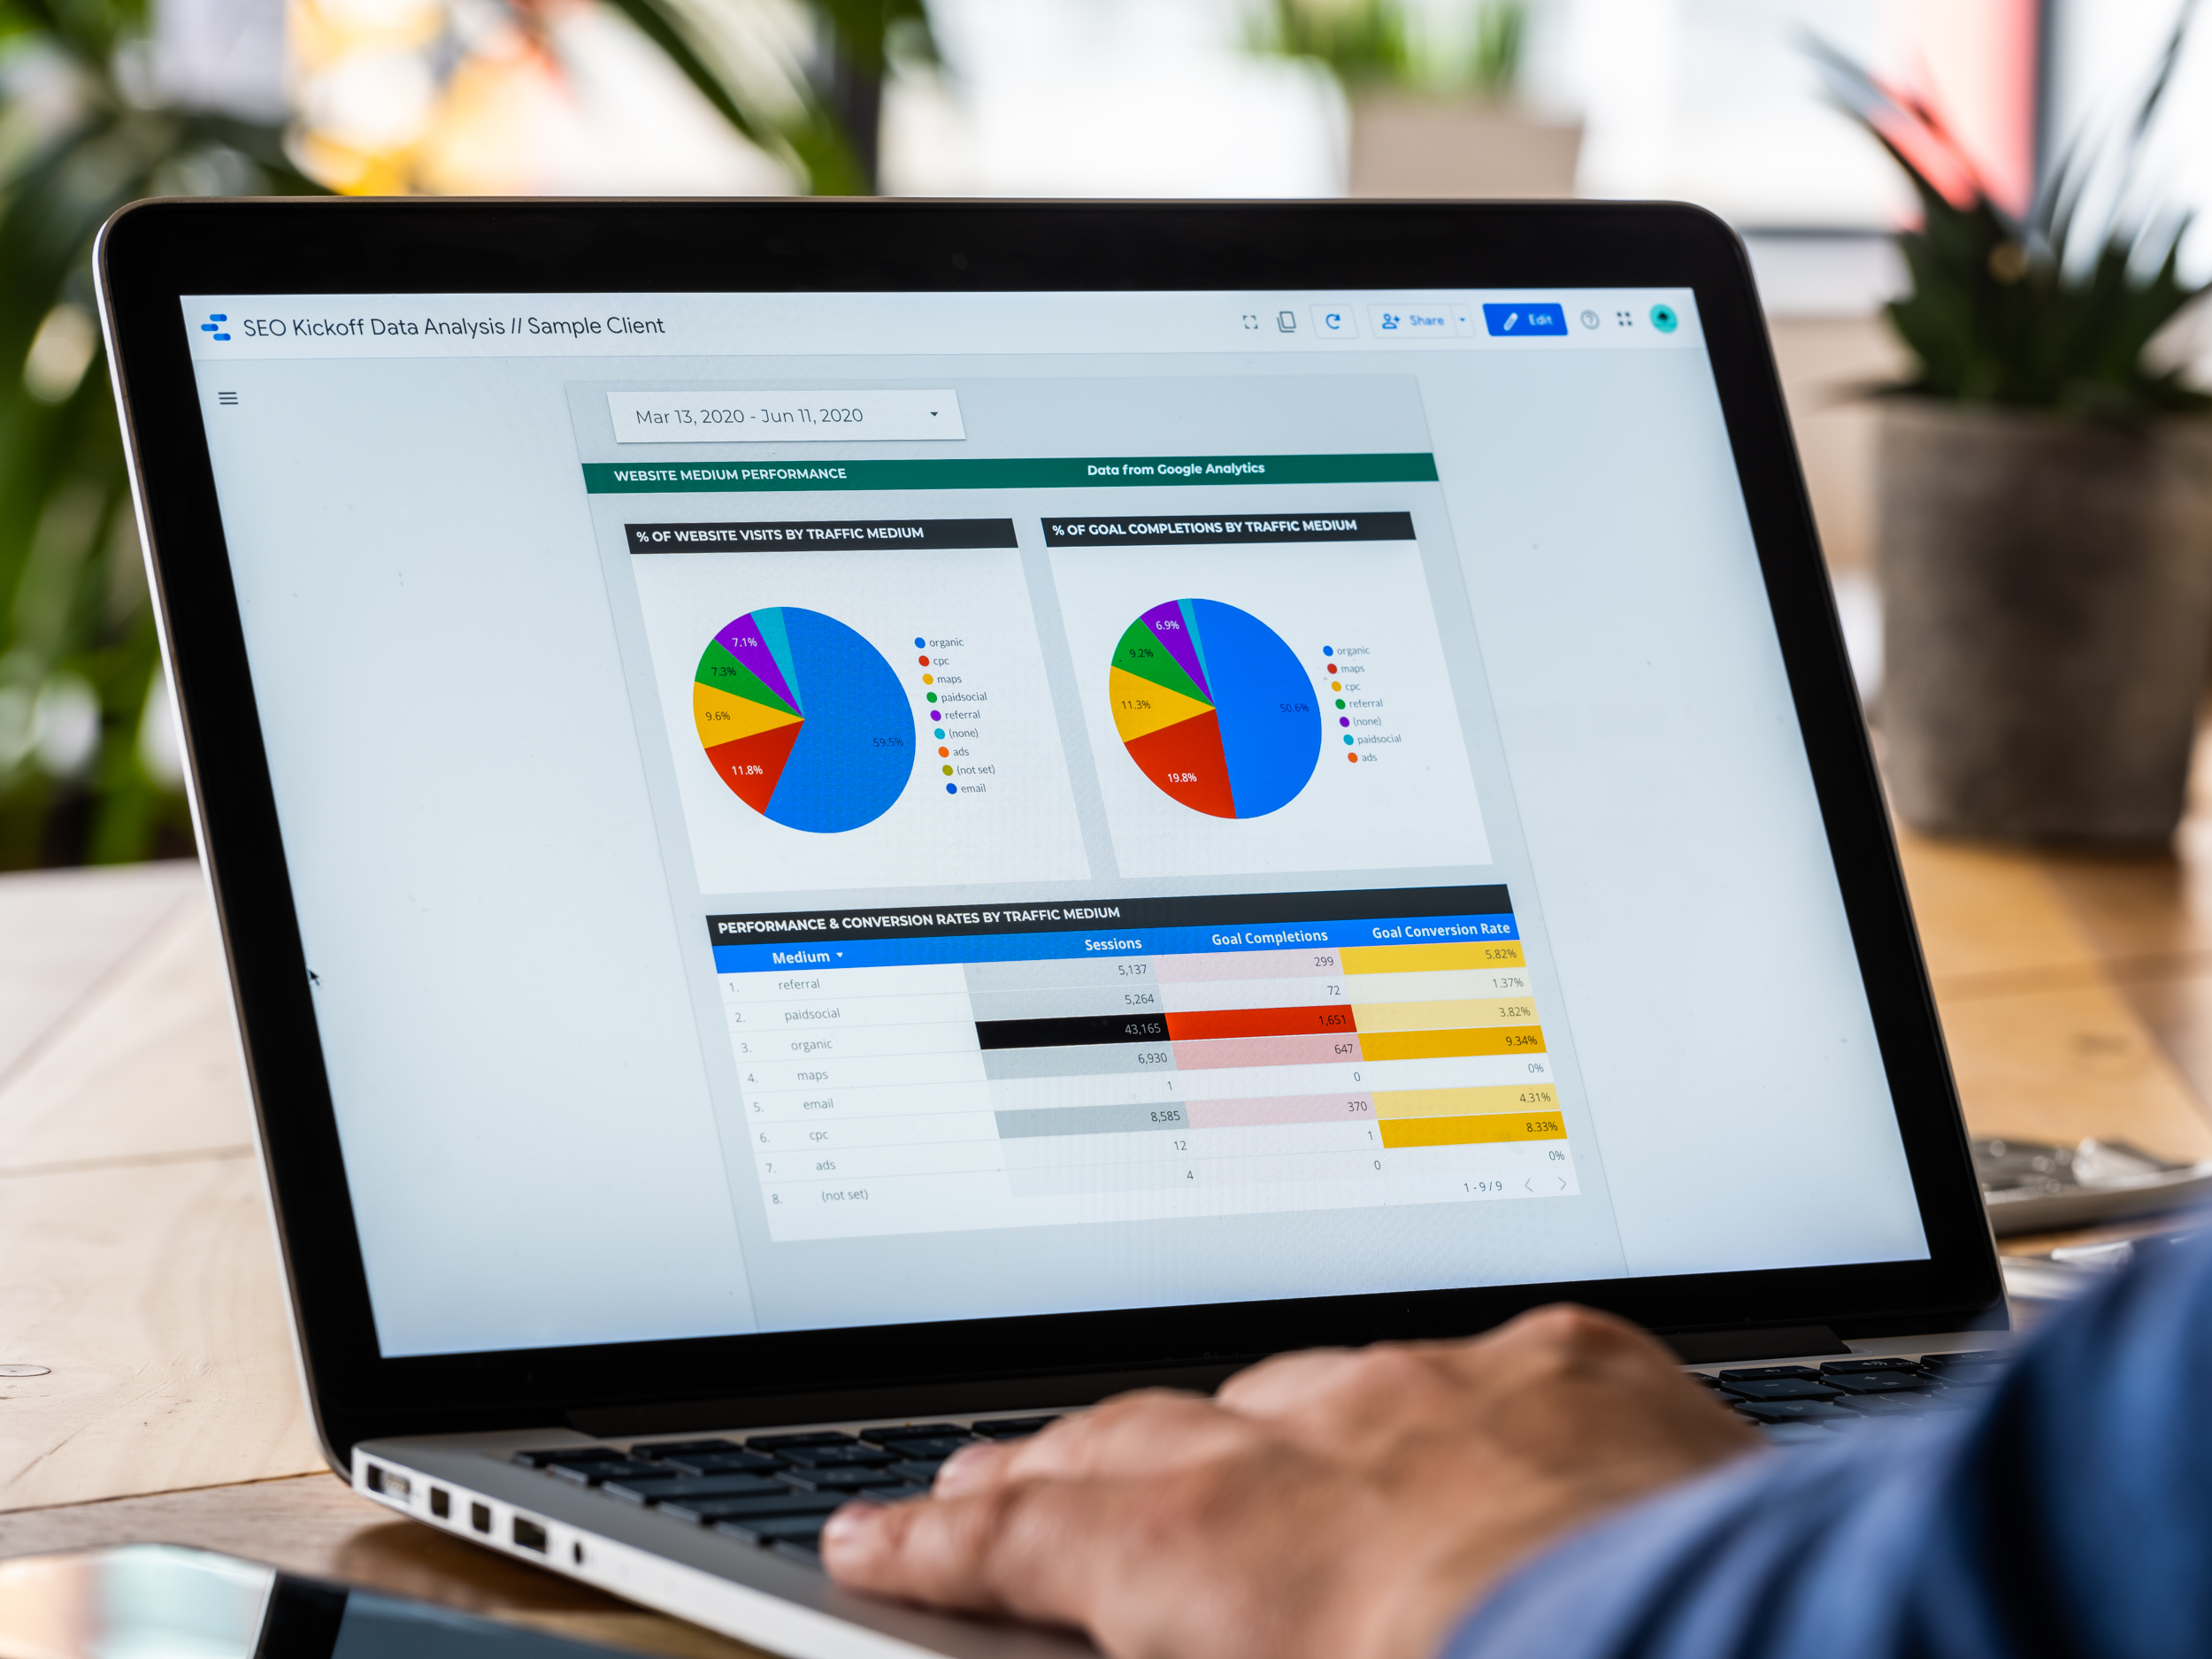 SEO - Performance by channel - pie charts